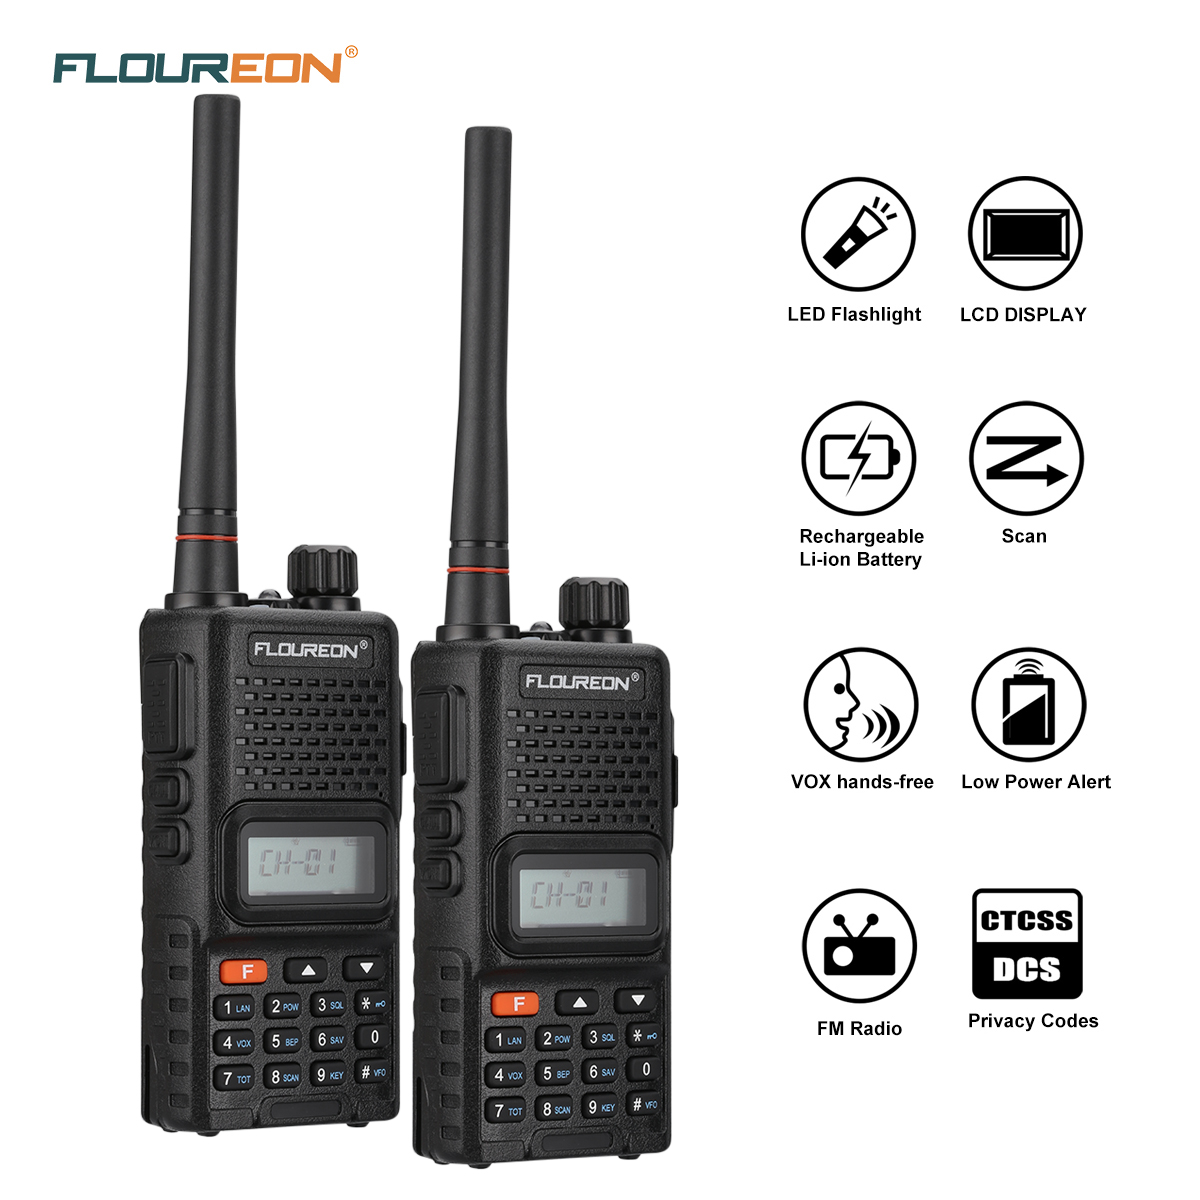 Handheld Walkie Talkies for Adults, FLOUREON 22 Channel Two-Way Radio Long Range 7000M Rechargeable Interphone with LED Light FM Radio Function for Shopping Centres and Outdoor Activities(2 Packs)